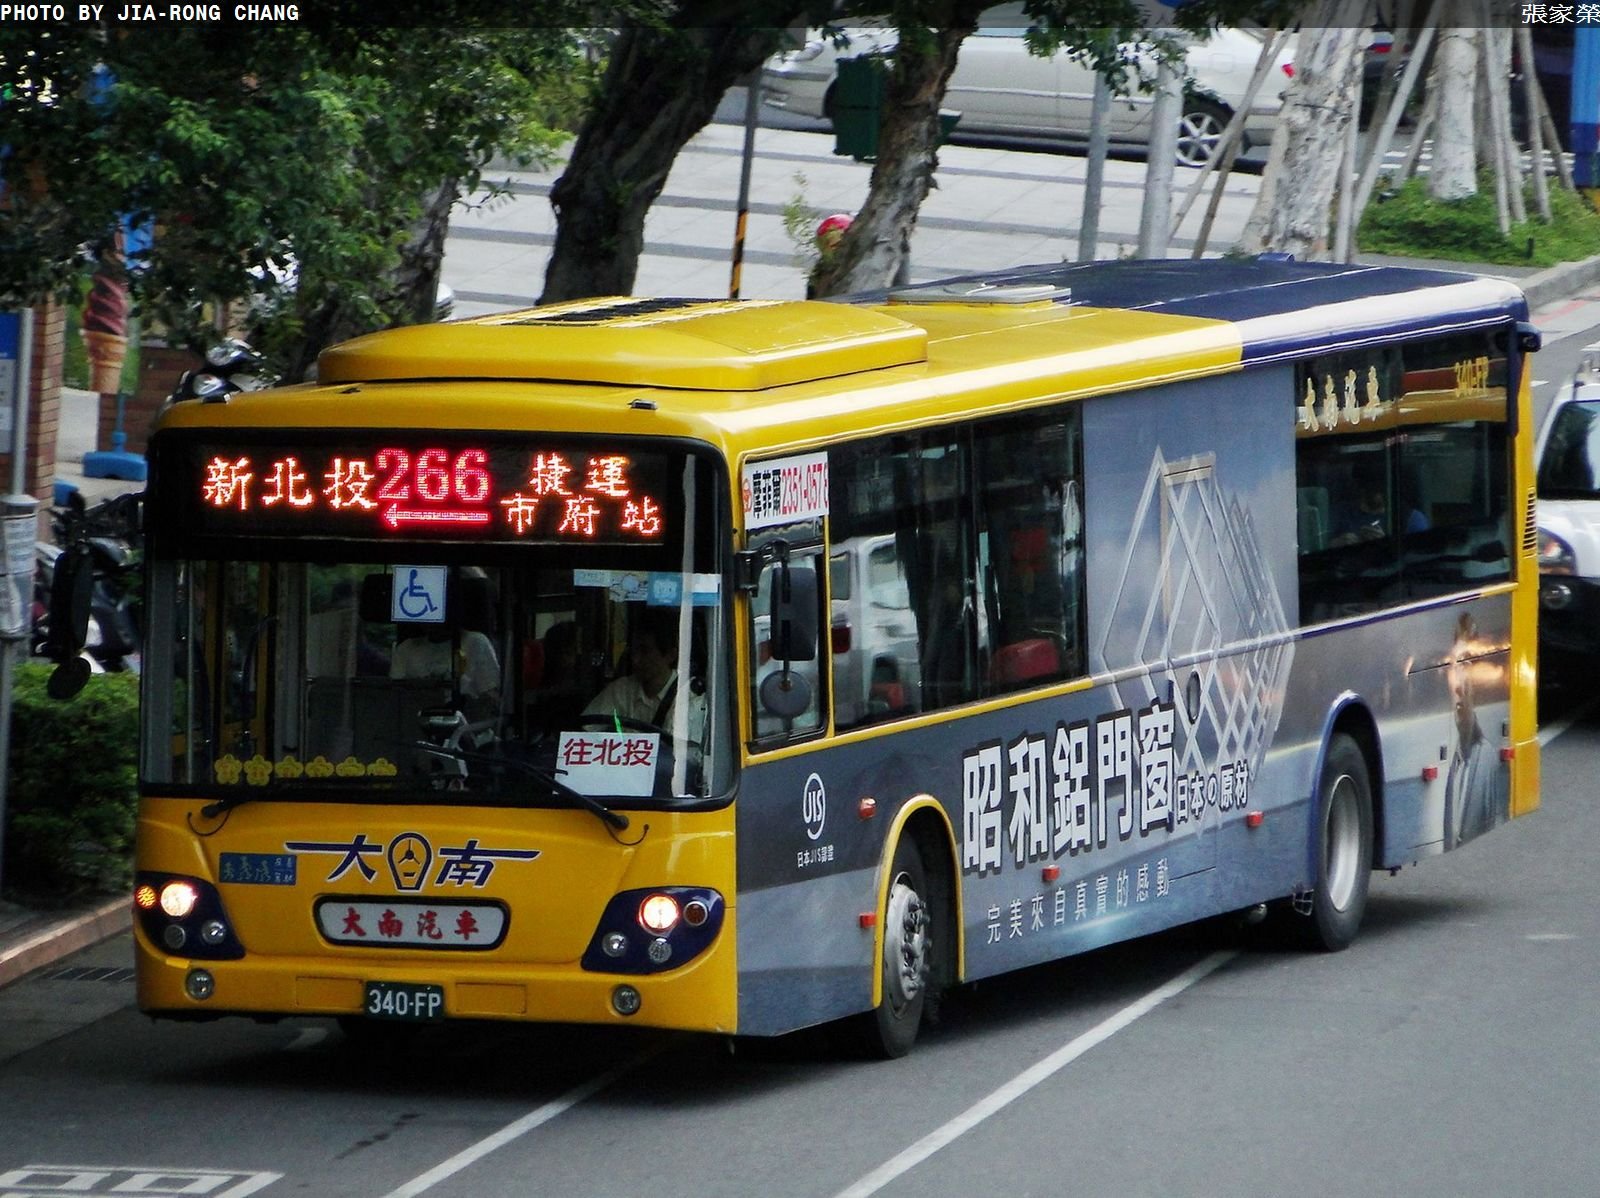 Danan Bus 340-FP left side 20140730.jpg